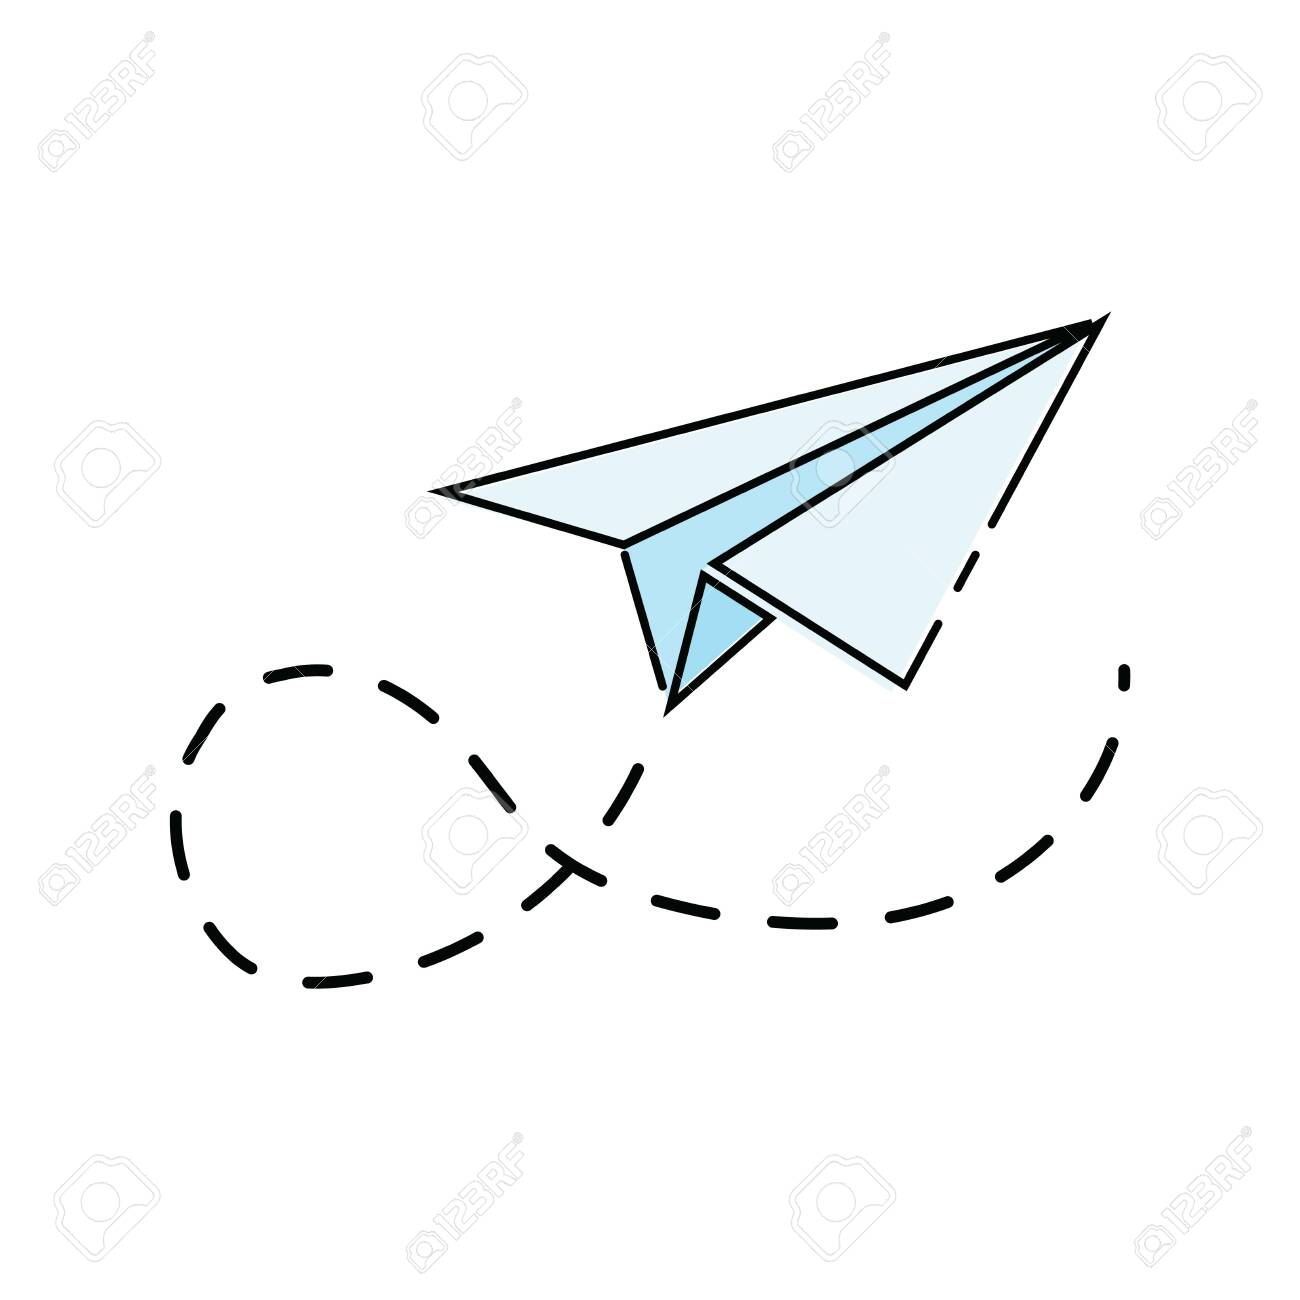 Cartoon Paper Airplane Icon Of The Aircraft Made Of Paper